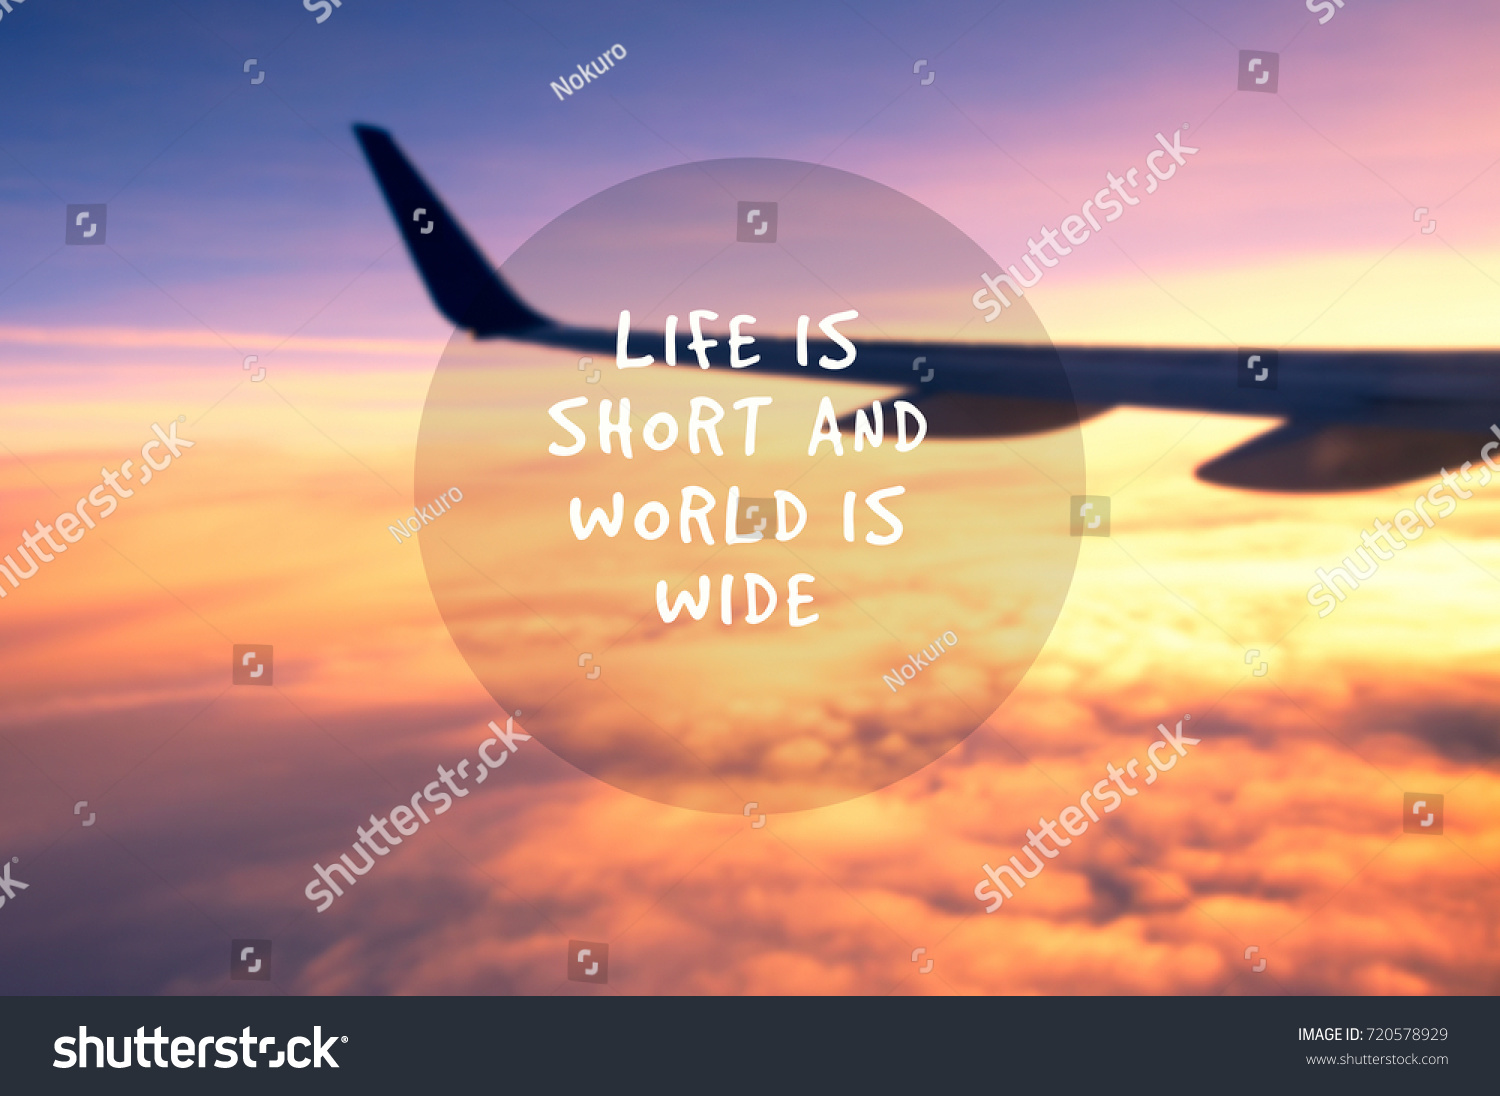 Short Quotes About Life Travel Inspirational Quotes Life Short World Stock Photo 720578929